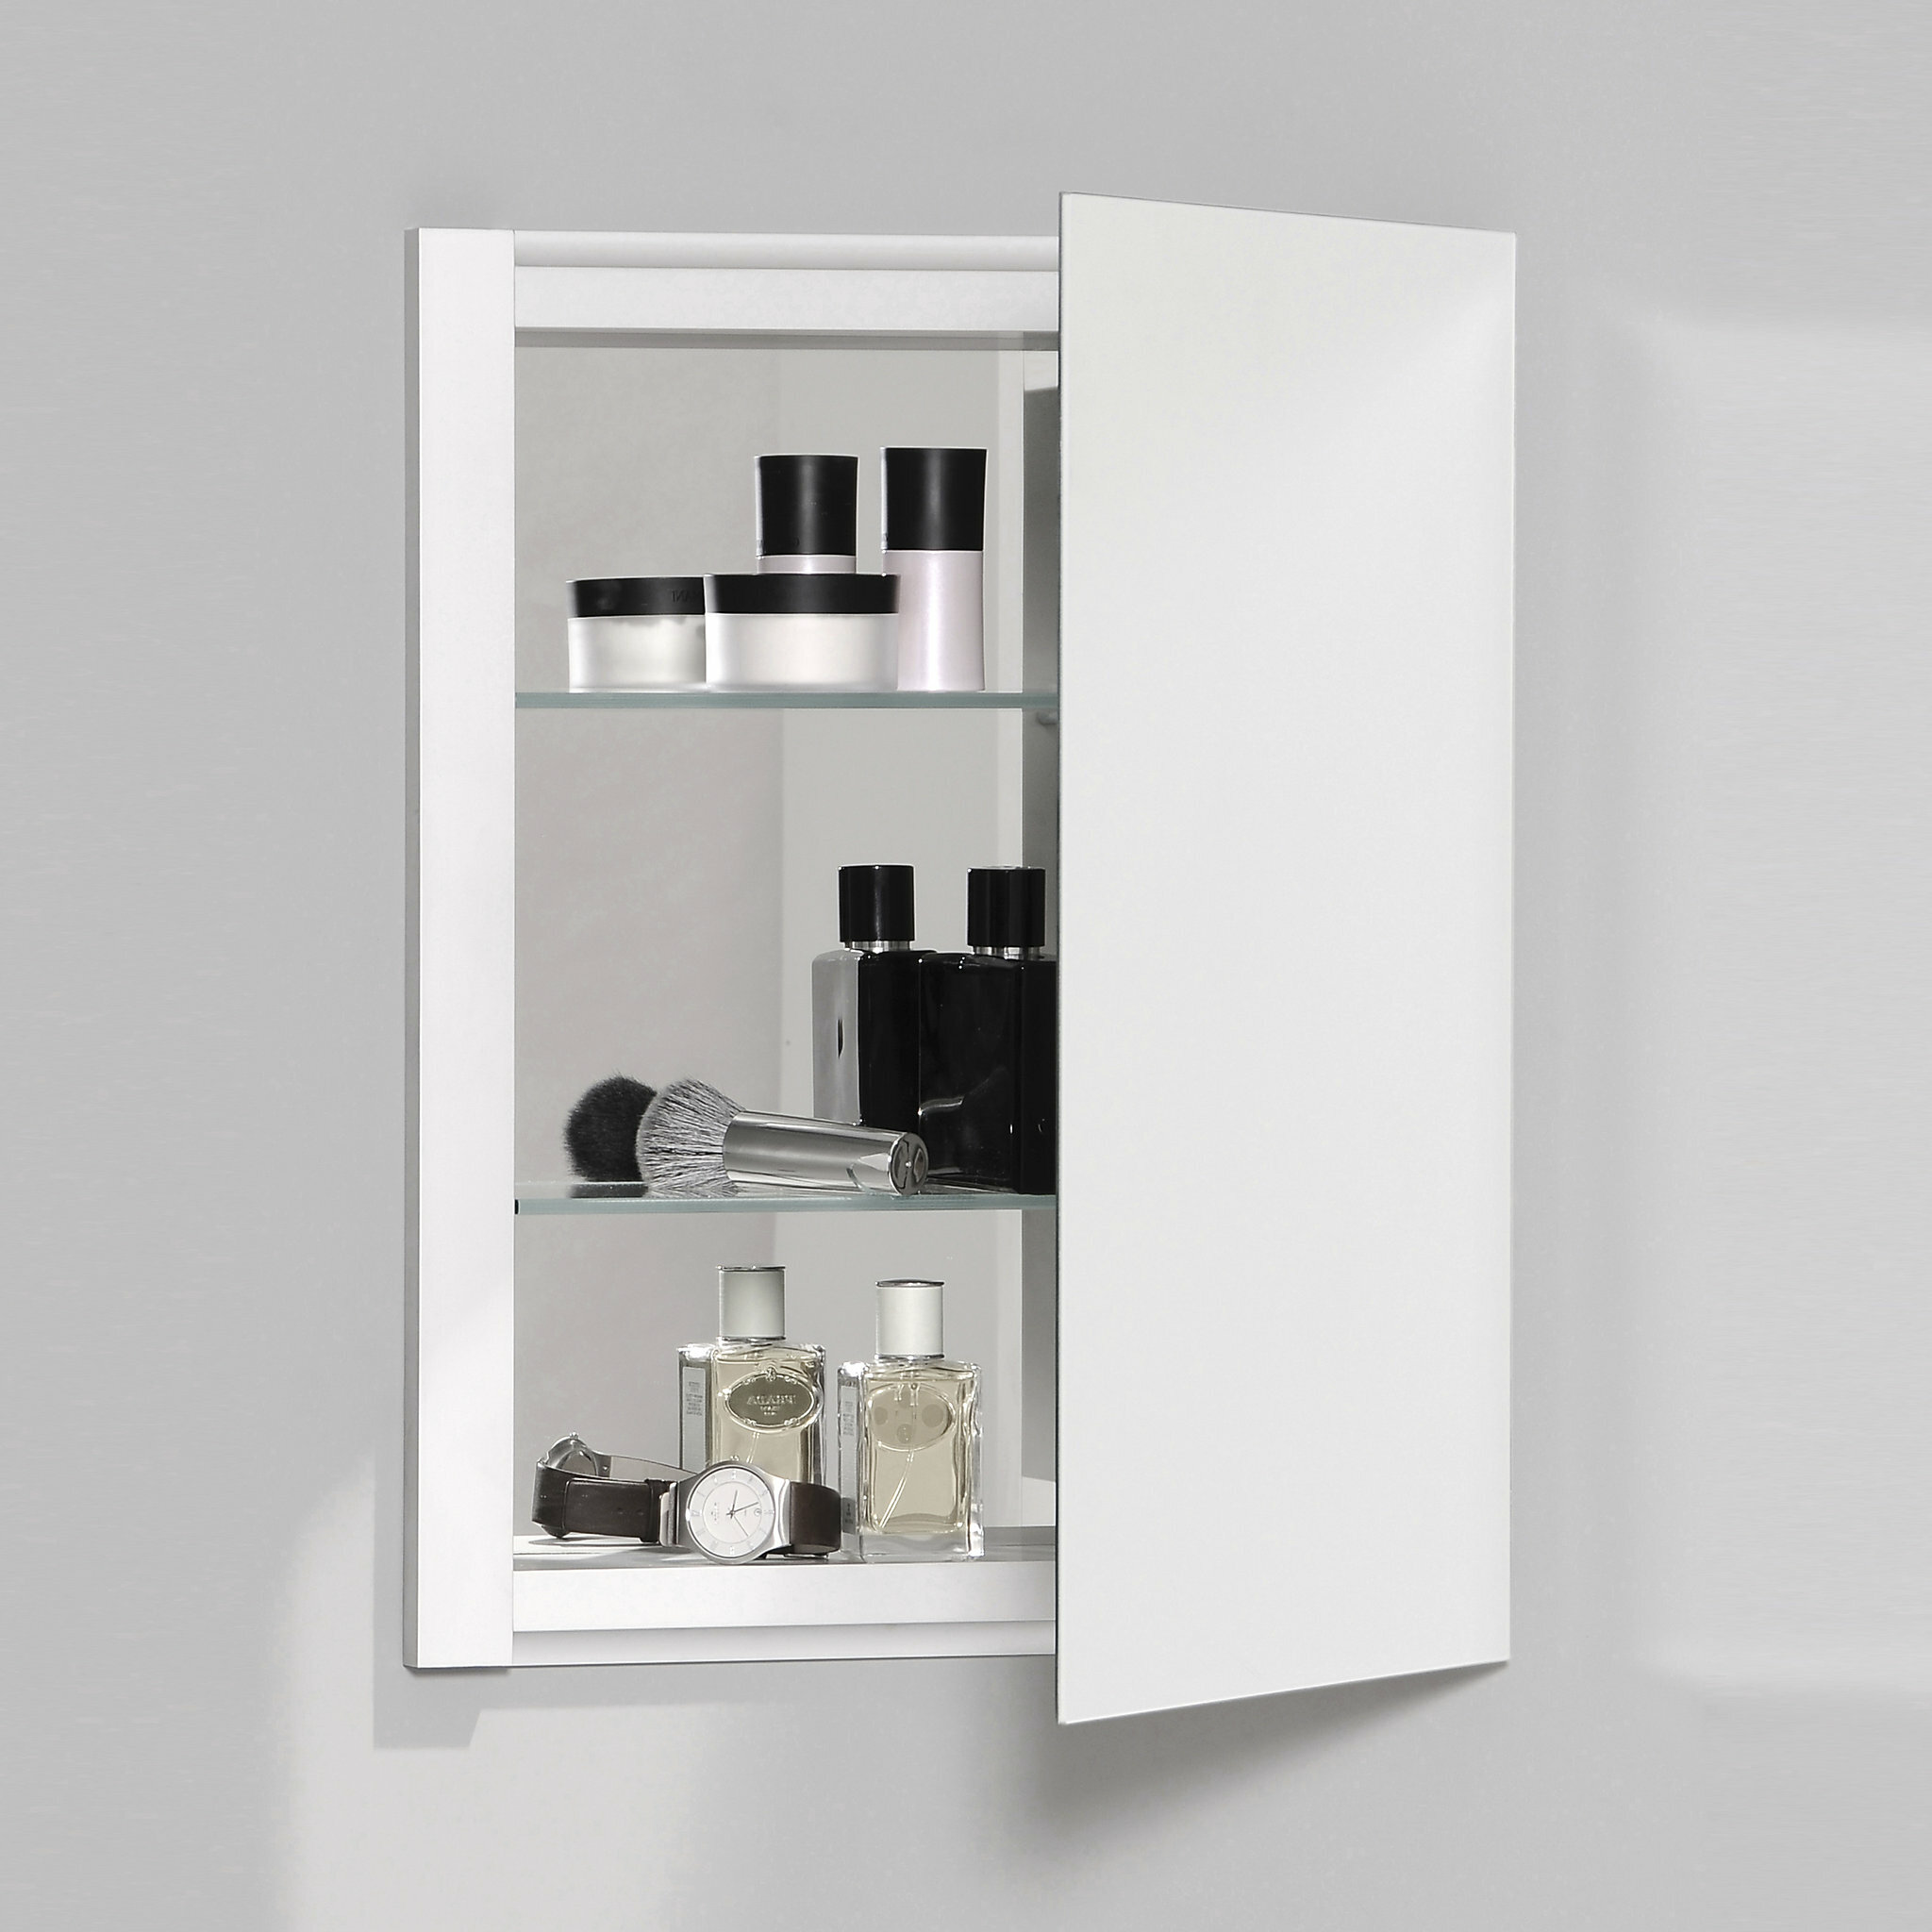 Robern R3 Series Recessed Or Surface Mount Frameless Medicine Cabinet With 3 Adjustable Shelves Reviews Wayfair